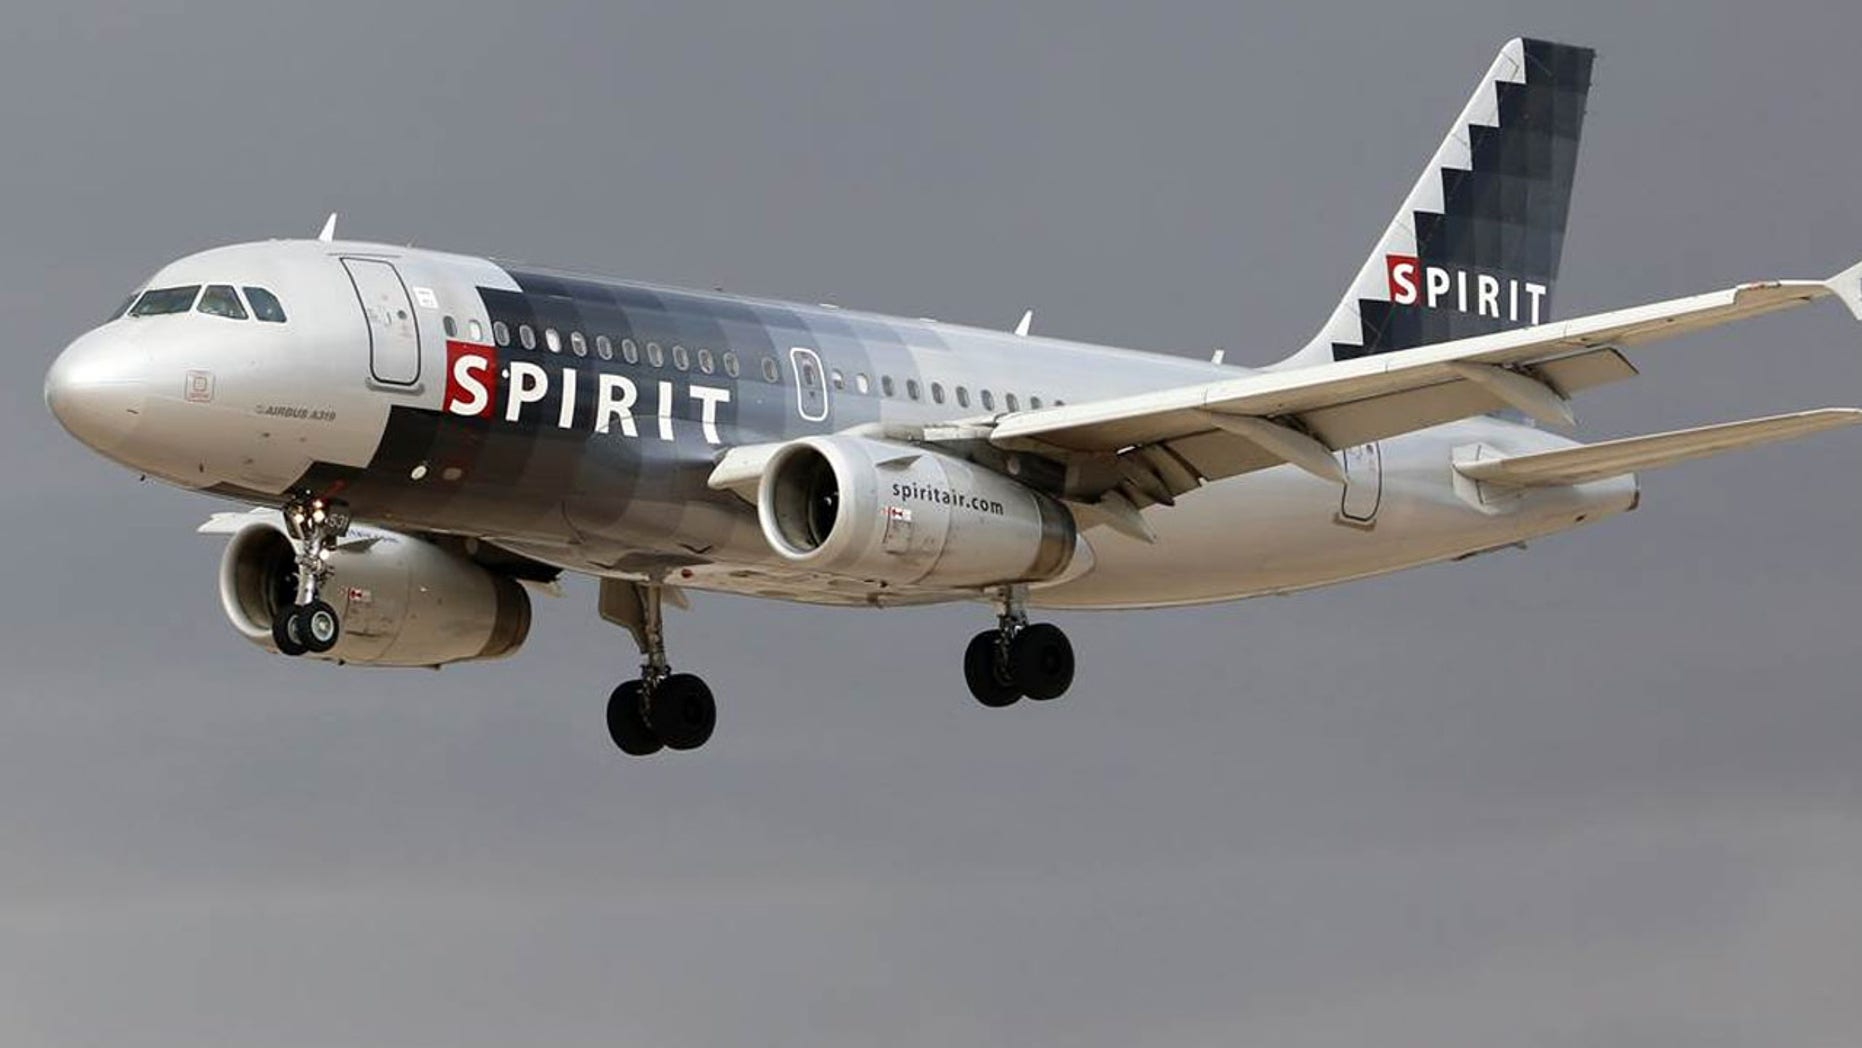 Spirit also had the highest complaint rate, more than twice as high as its nearest rival, Frontier Airlines. Hawaiian had the lowest complaint rate.